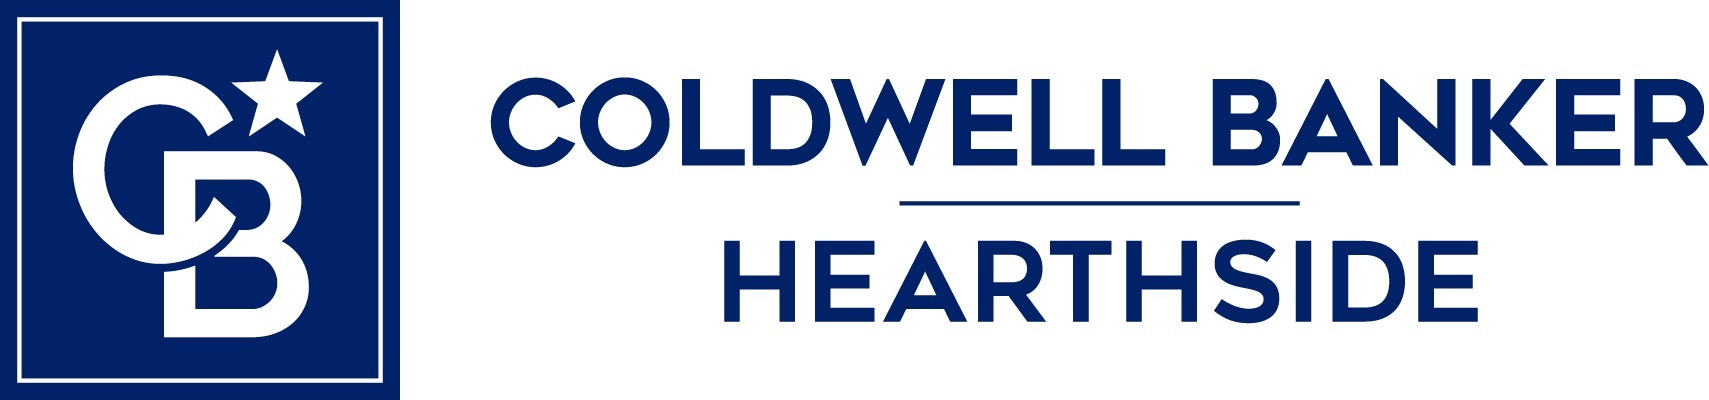 Sherry W. Jones - Coldwell Banker Hearthside Logo